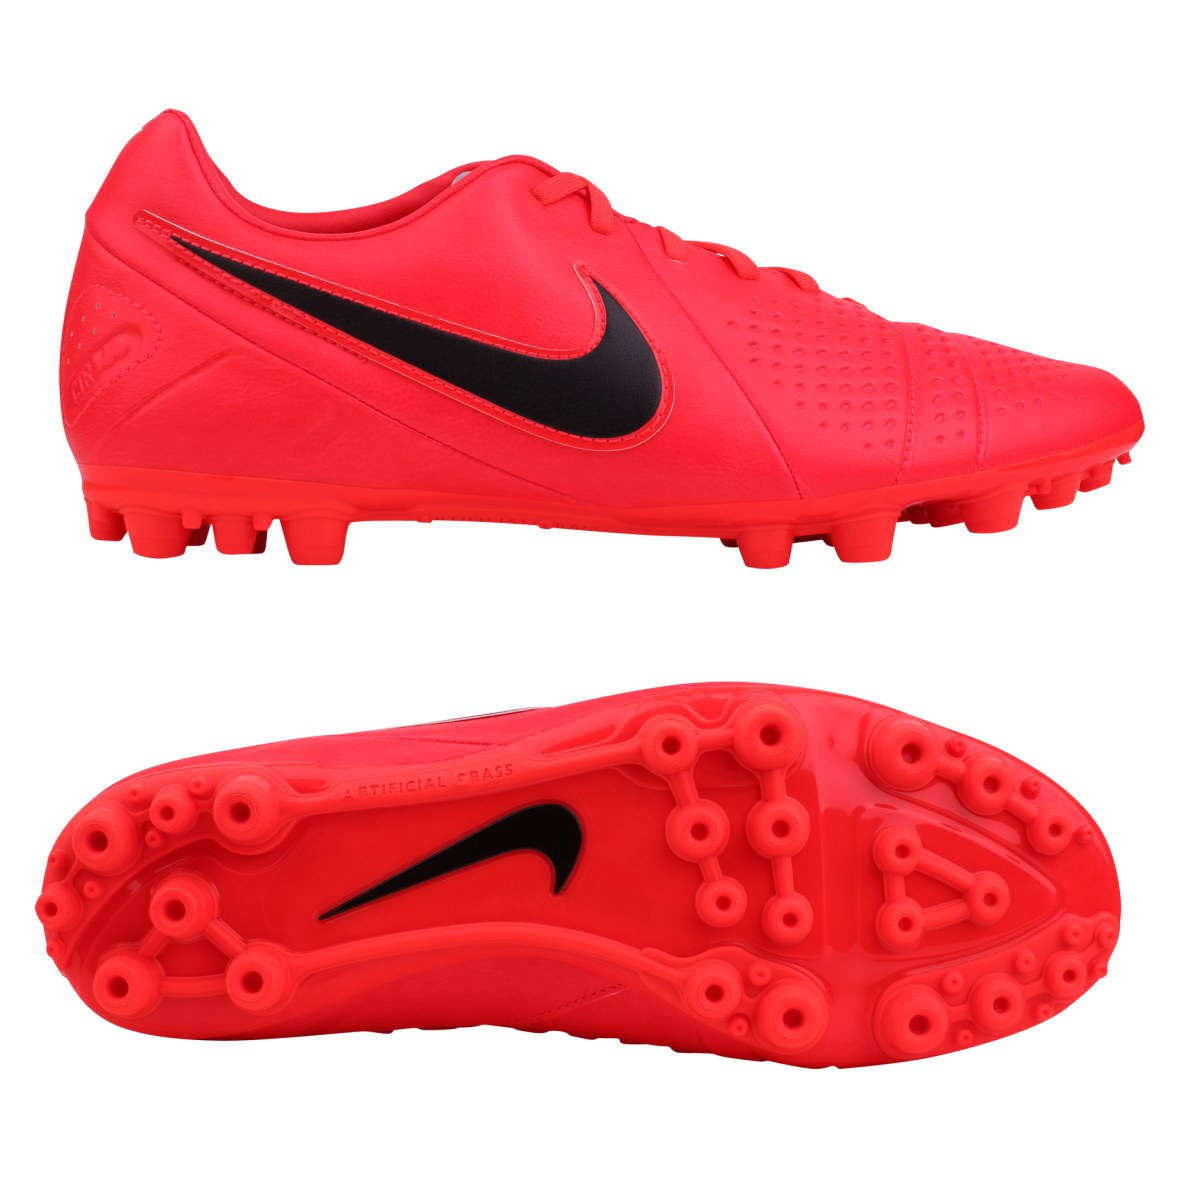 nike ctr360 libretto iii ag schuhe fu ballschuhe. Black Bedroom Furniture Sets. Home Design Ideas